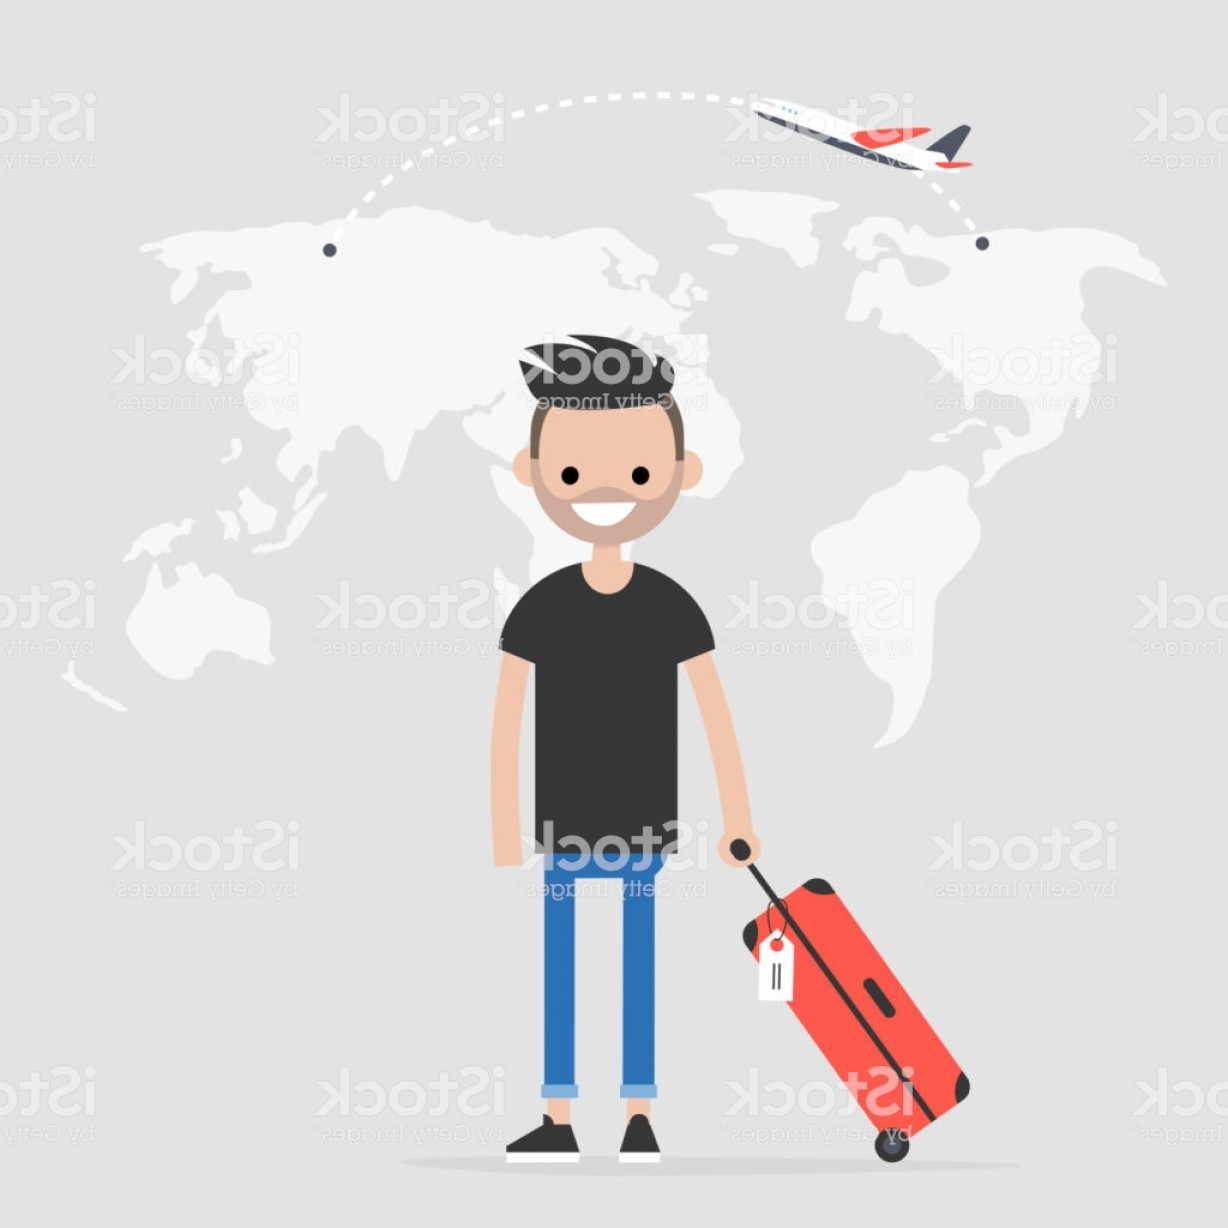 Vector Man Working In Cabin: Young Traveler Holding A Cabin Luggage Flight Destination Tourism World Map Flat Gm